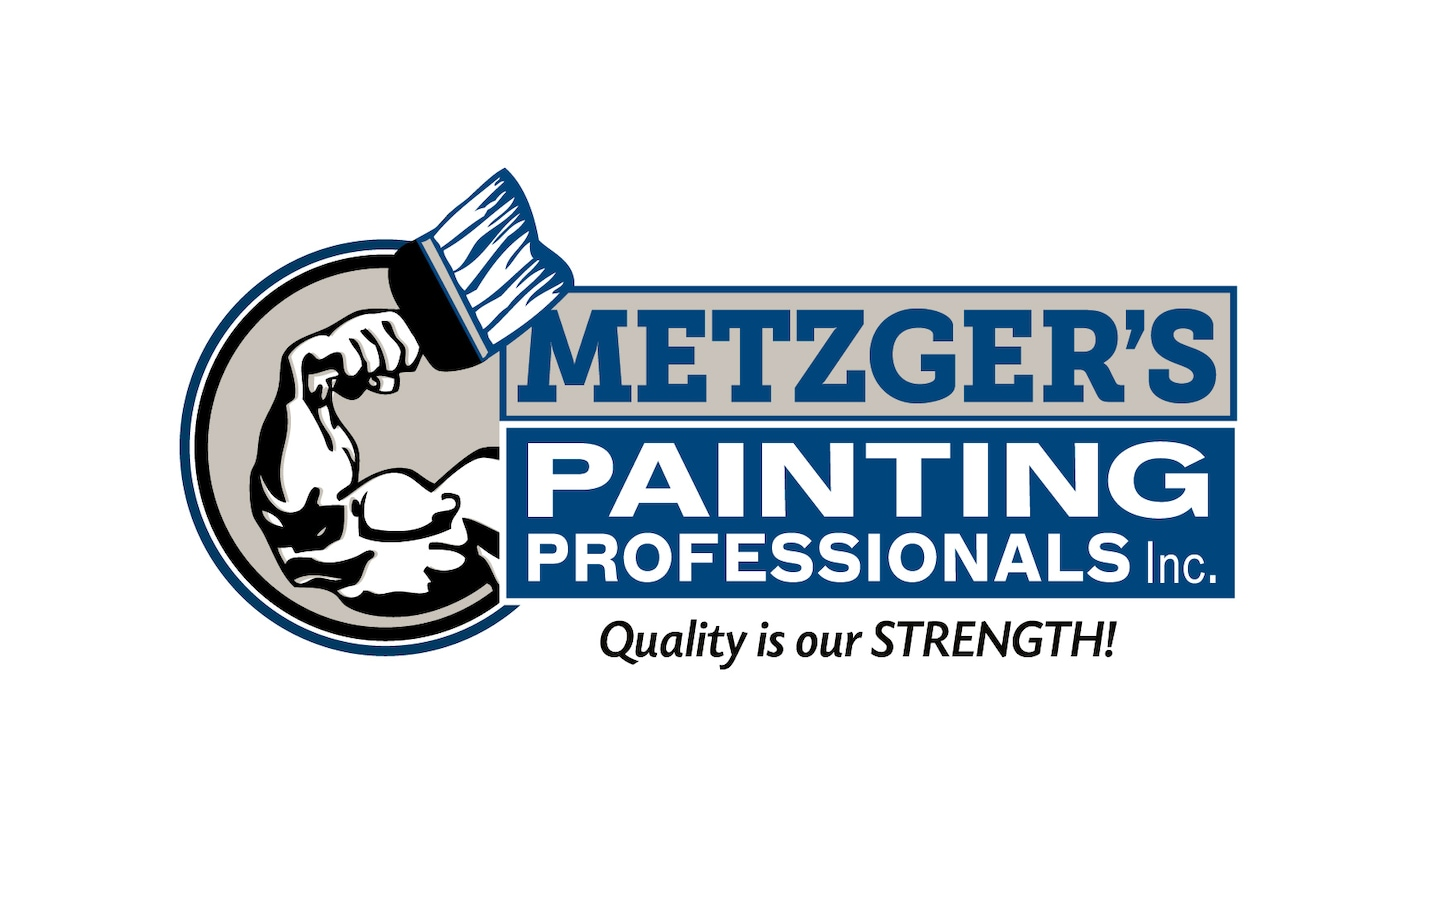 Metzger's Painting Professionals Inc